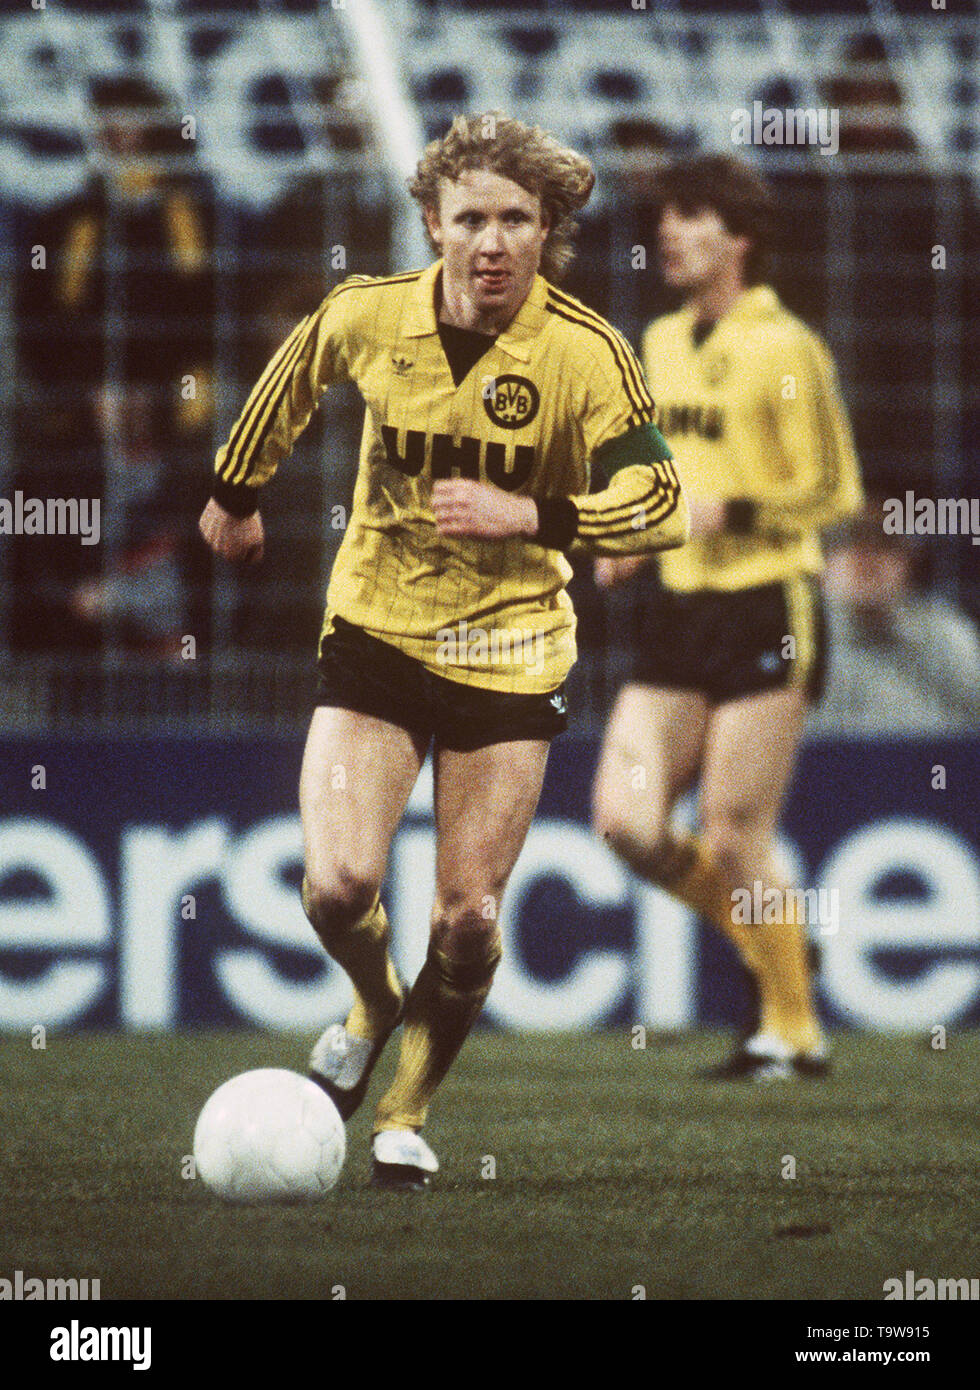 Manfred BURGSMUELLER died at the age of 69 surprisingly. Archive photo; Manfred BURGSMUELLER, Germany, Football, Borussia Dortmund, Single Action, HF Â | usage worldwide - Stock Image